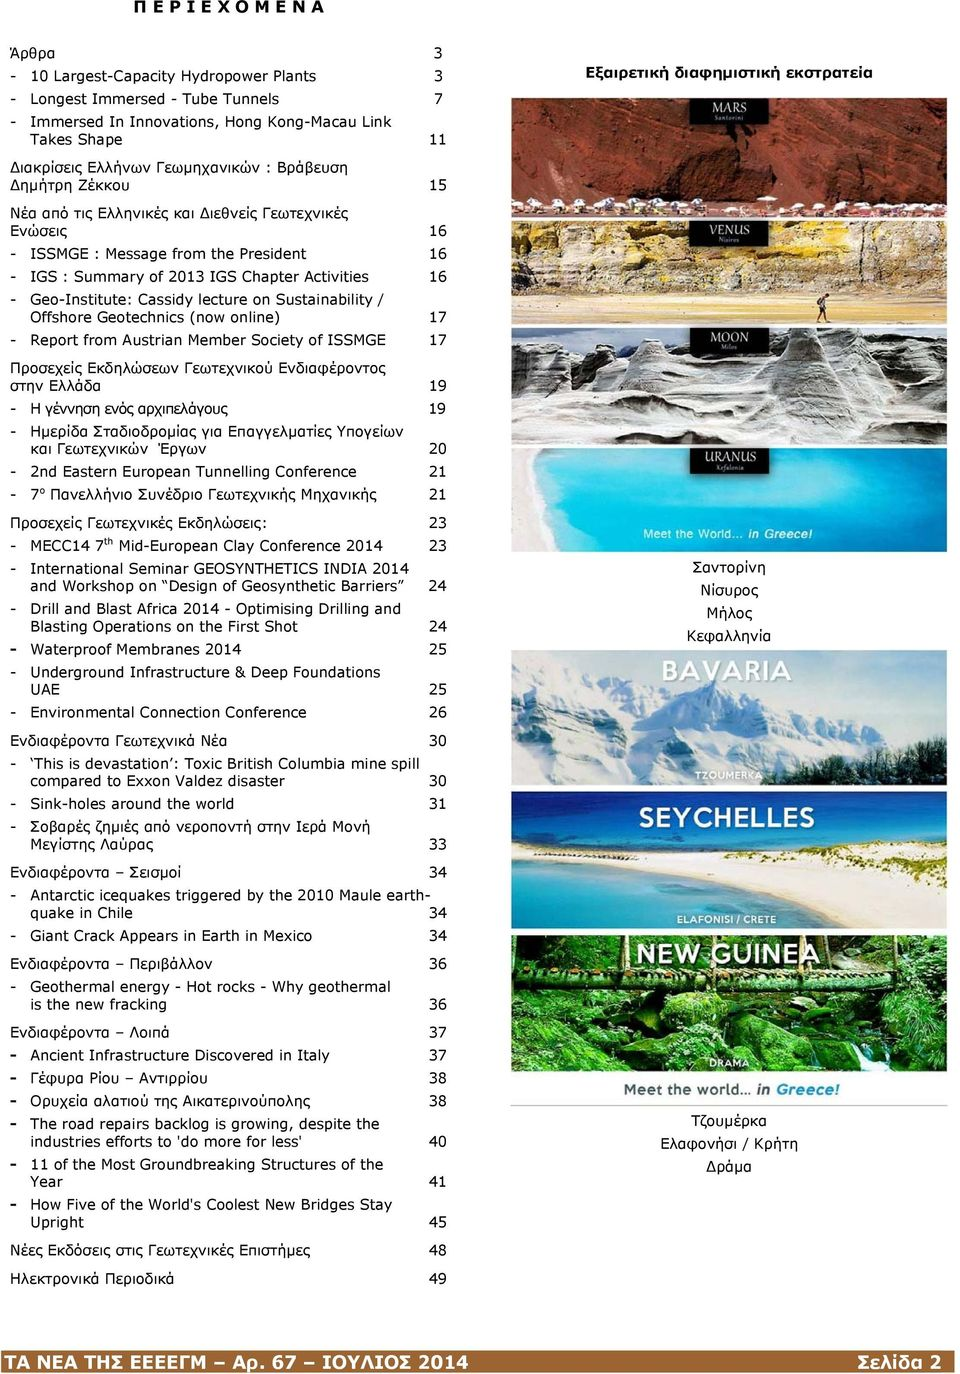 Geo-Institute: Cassidy lecture on Sustainability / Offshore Geotechnics (now online) 17 - Report from Austrian Member Society of ISSMGE 17 Προσεχείς Εκδηλώσεων Γεωτεχνικού Ενδιαφέροντος στην Ελλάδα